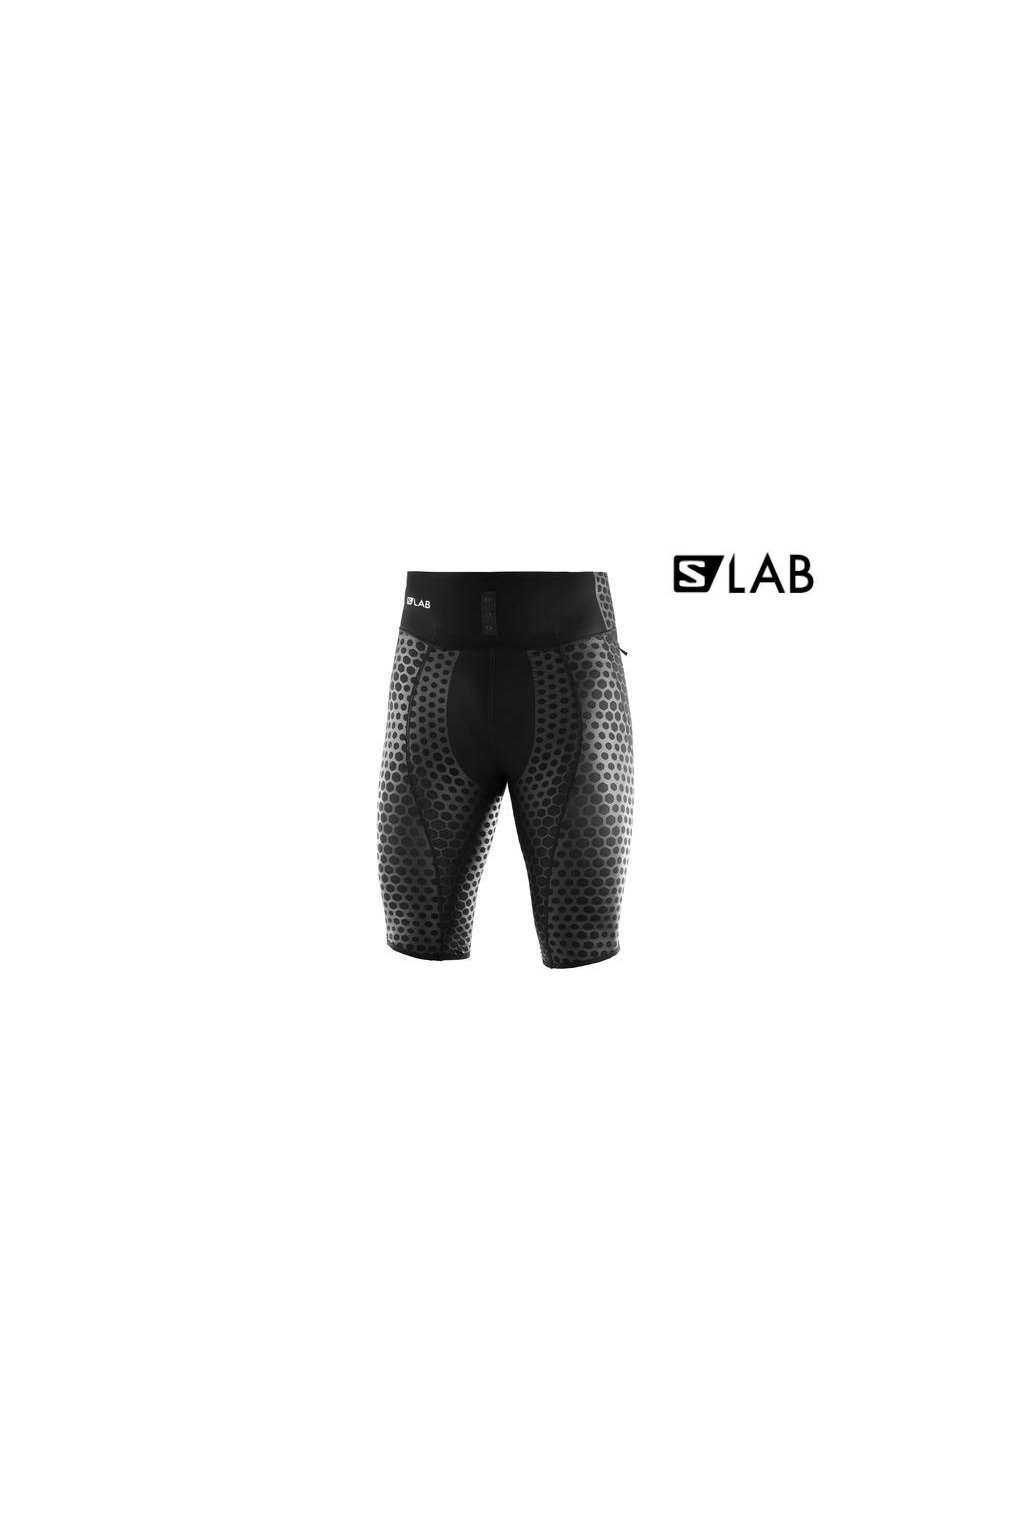 S/LAB EXO HALF TIGHT M Black